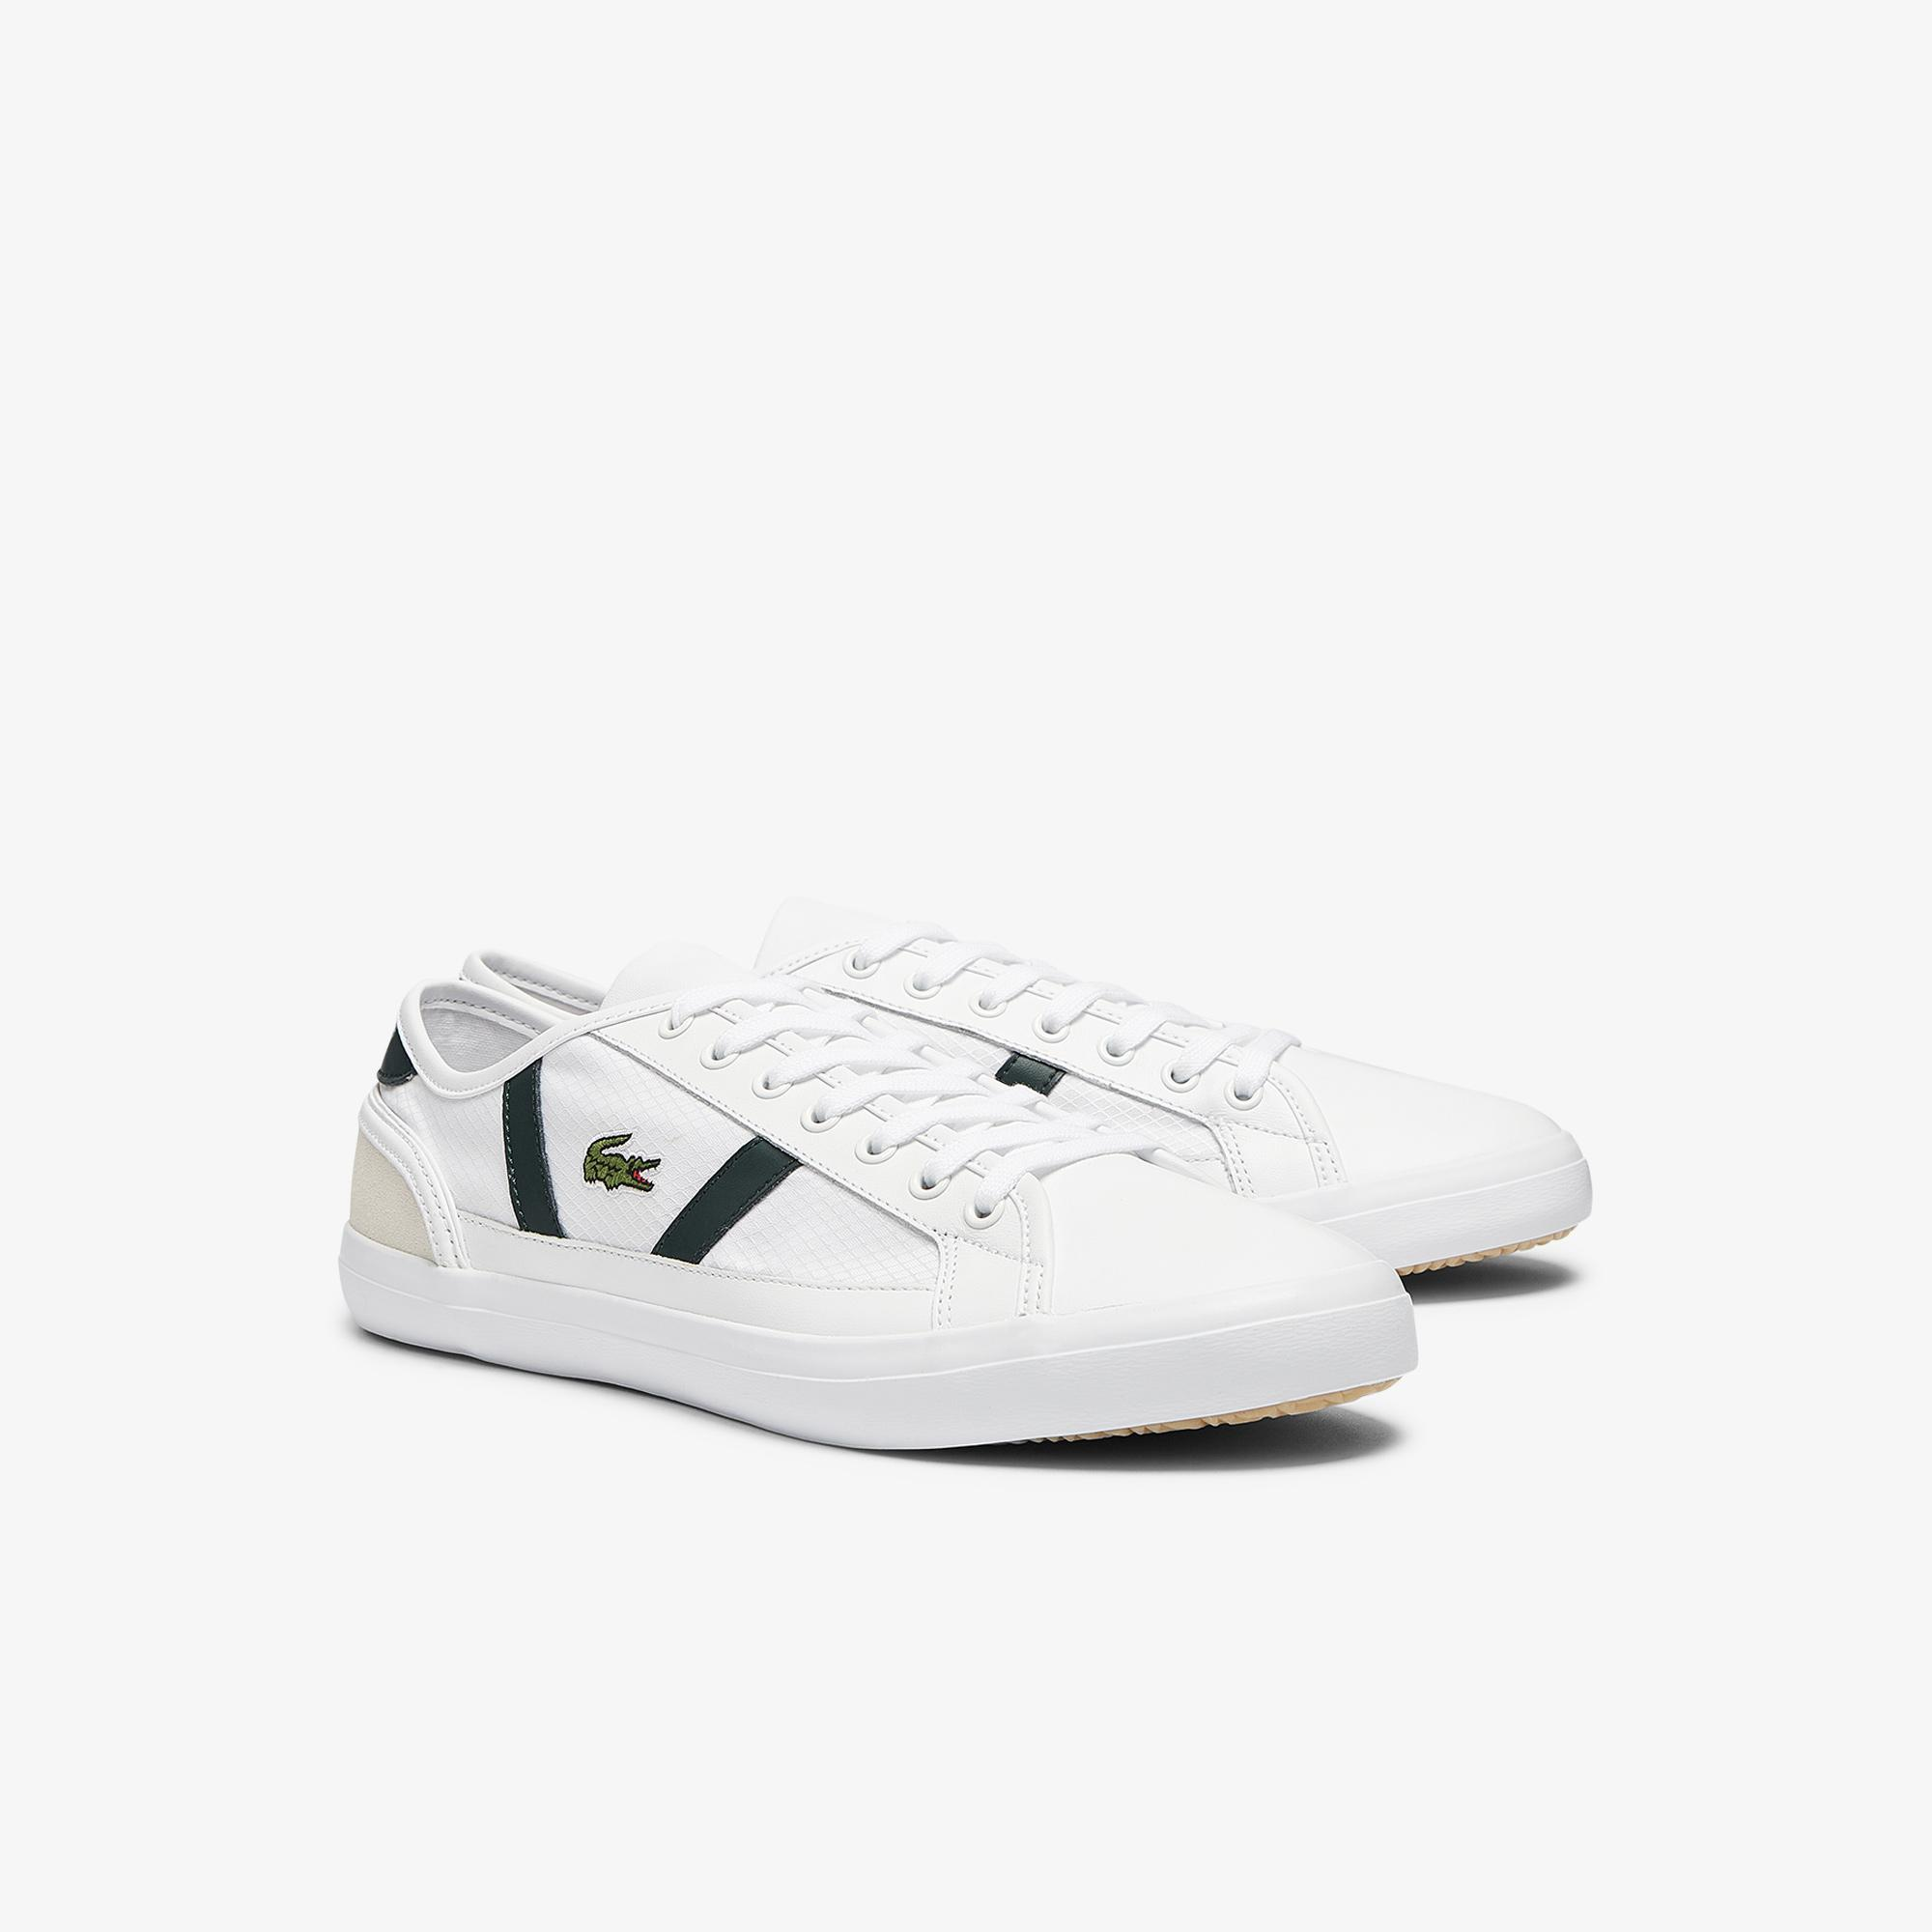 Lacoste Men's Sideline Textile and Leather Trainers